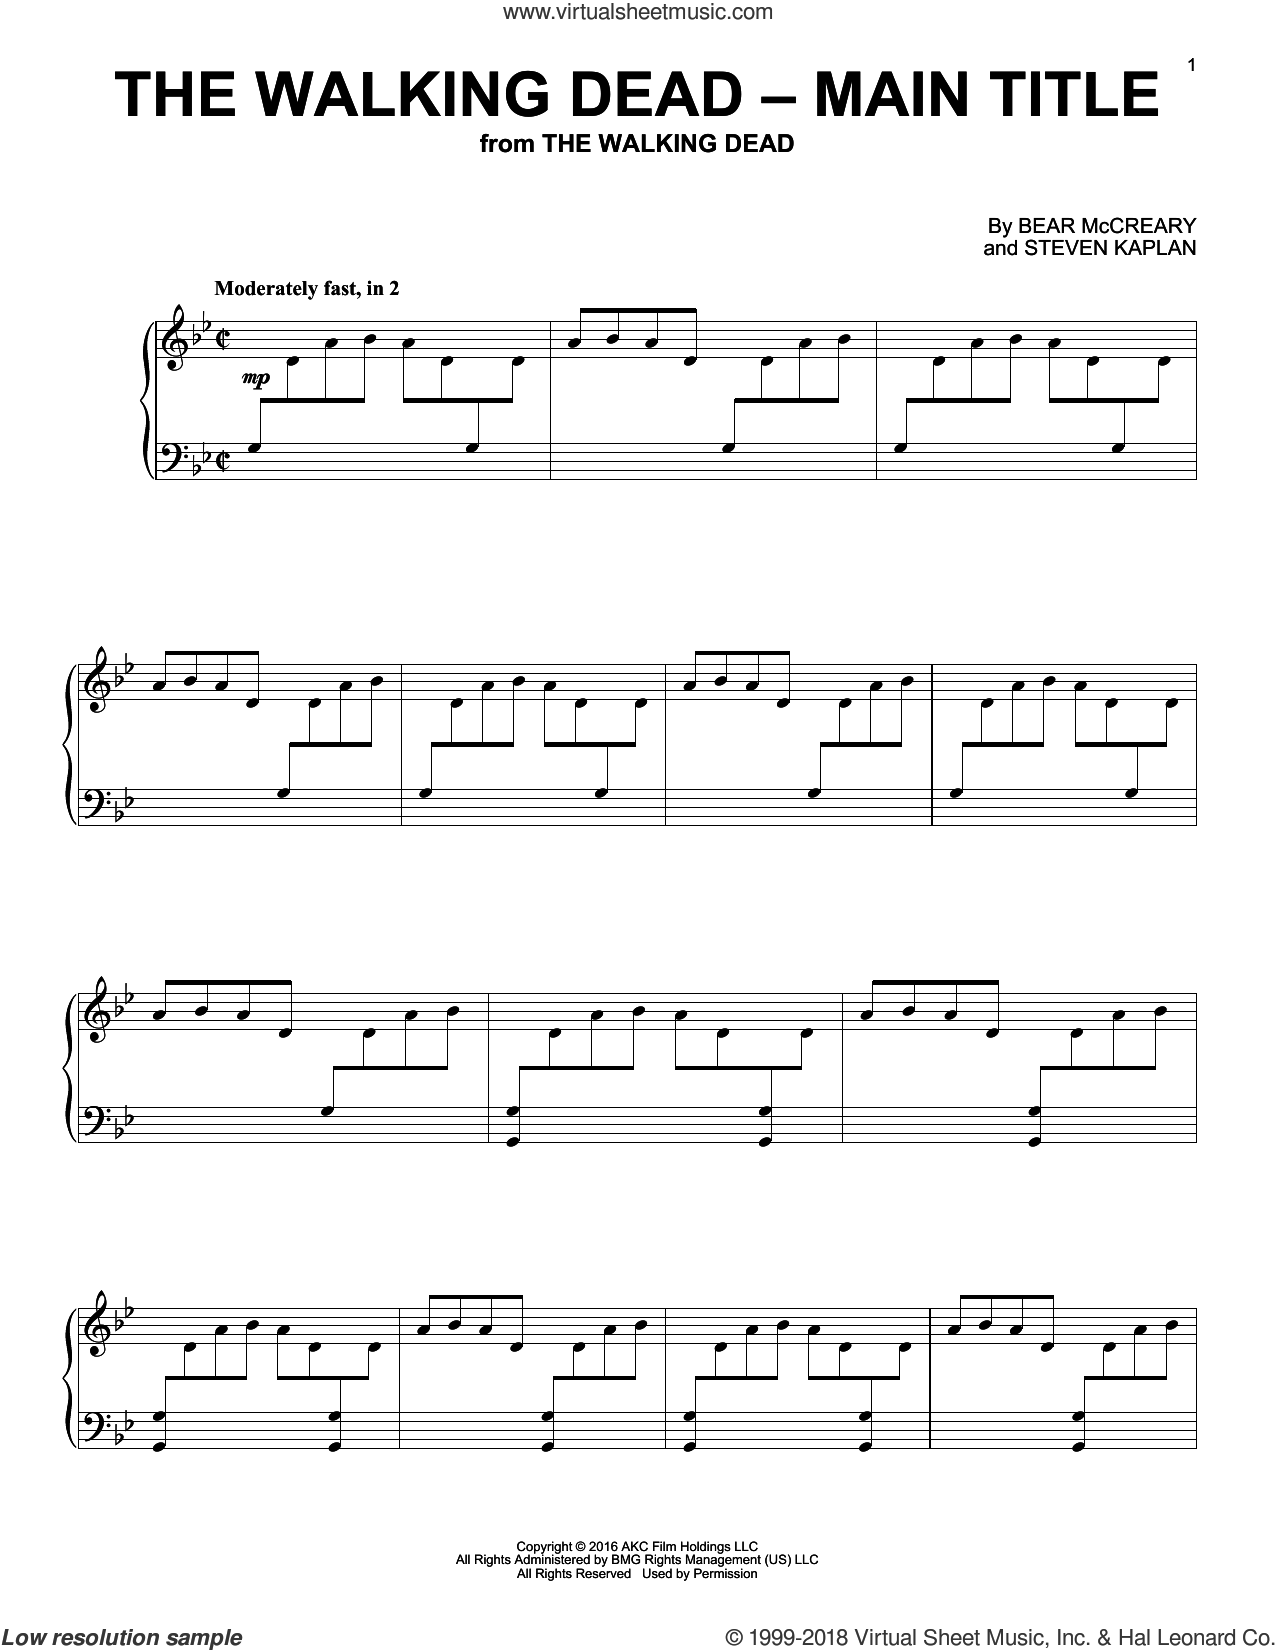 The Walking Dead - Main Title sheet music for piano solo by Bear McCreary. Score Image Preview.